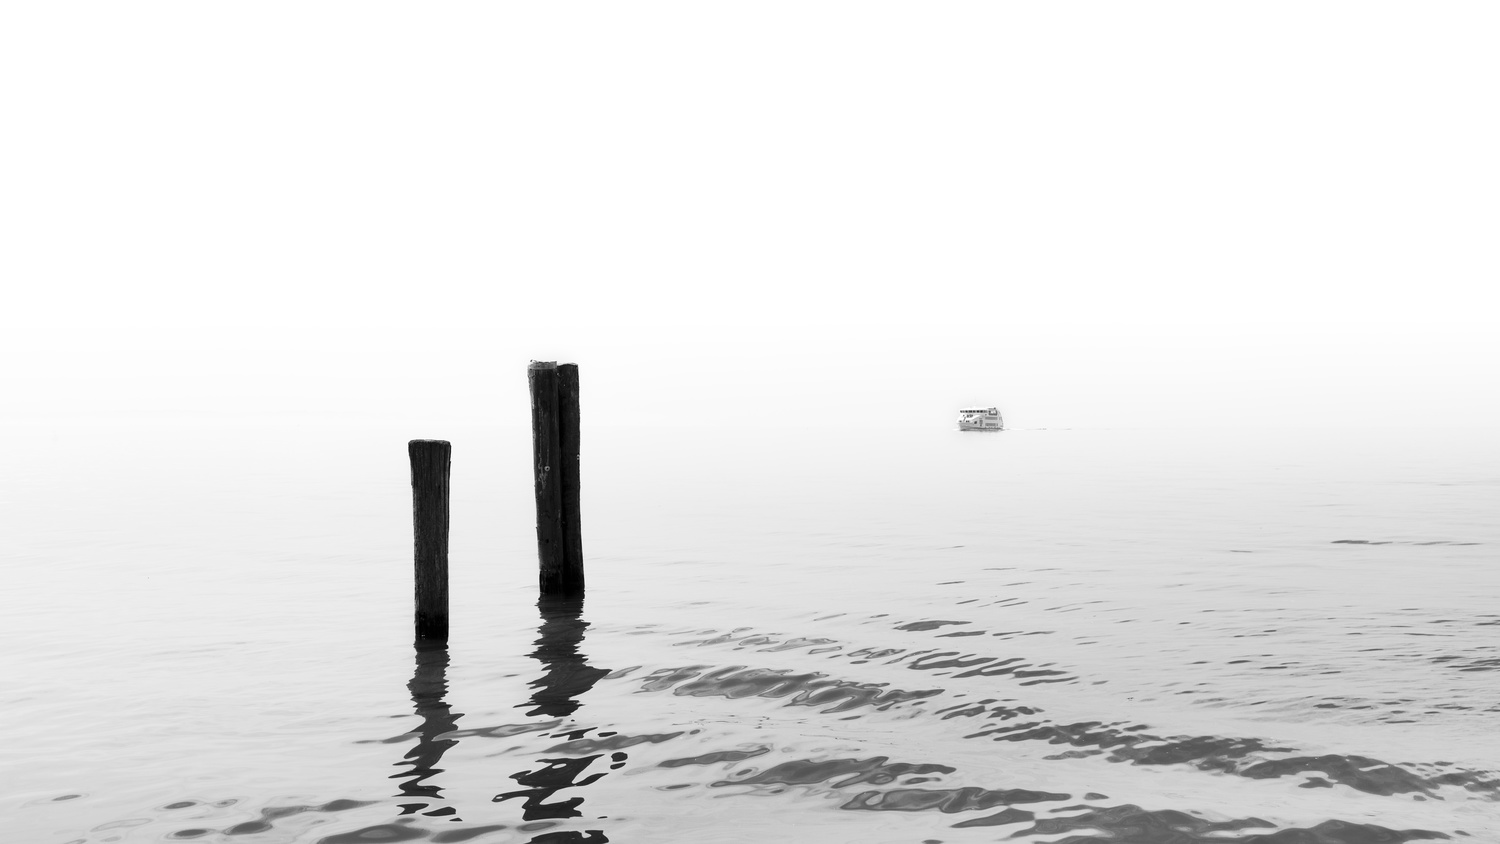 Searching a safe harbor by Andrea Mingaroni